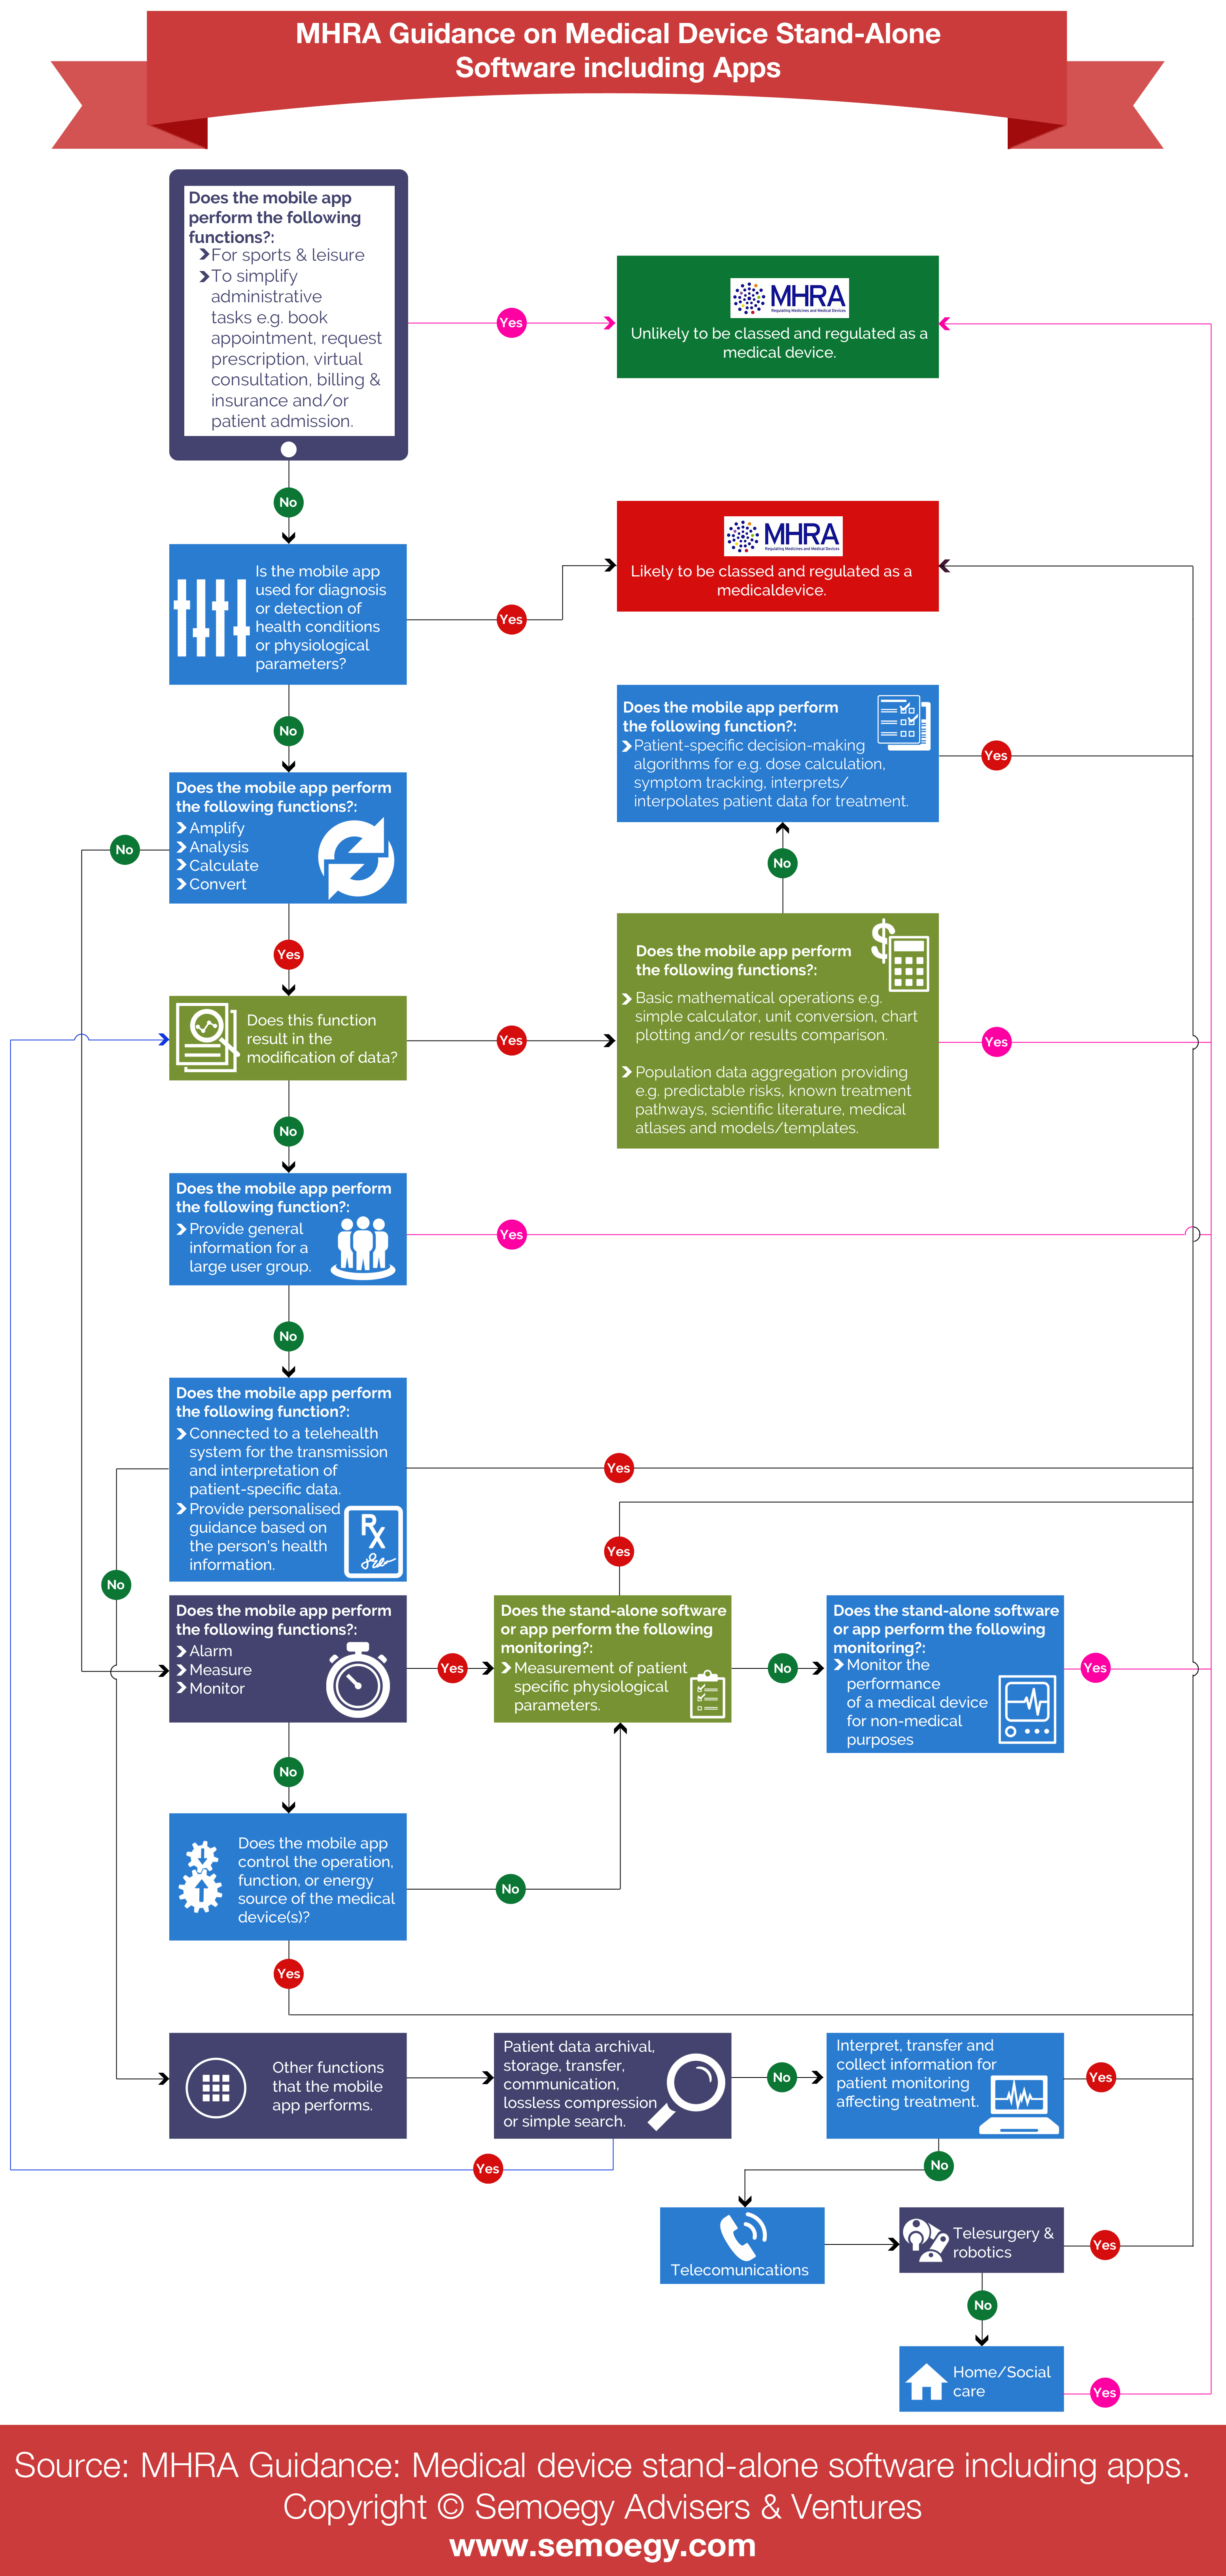 UK MHRA Medical Mobile Apps Guidance Infographic